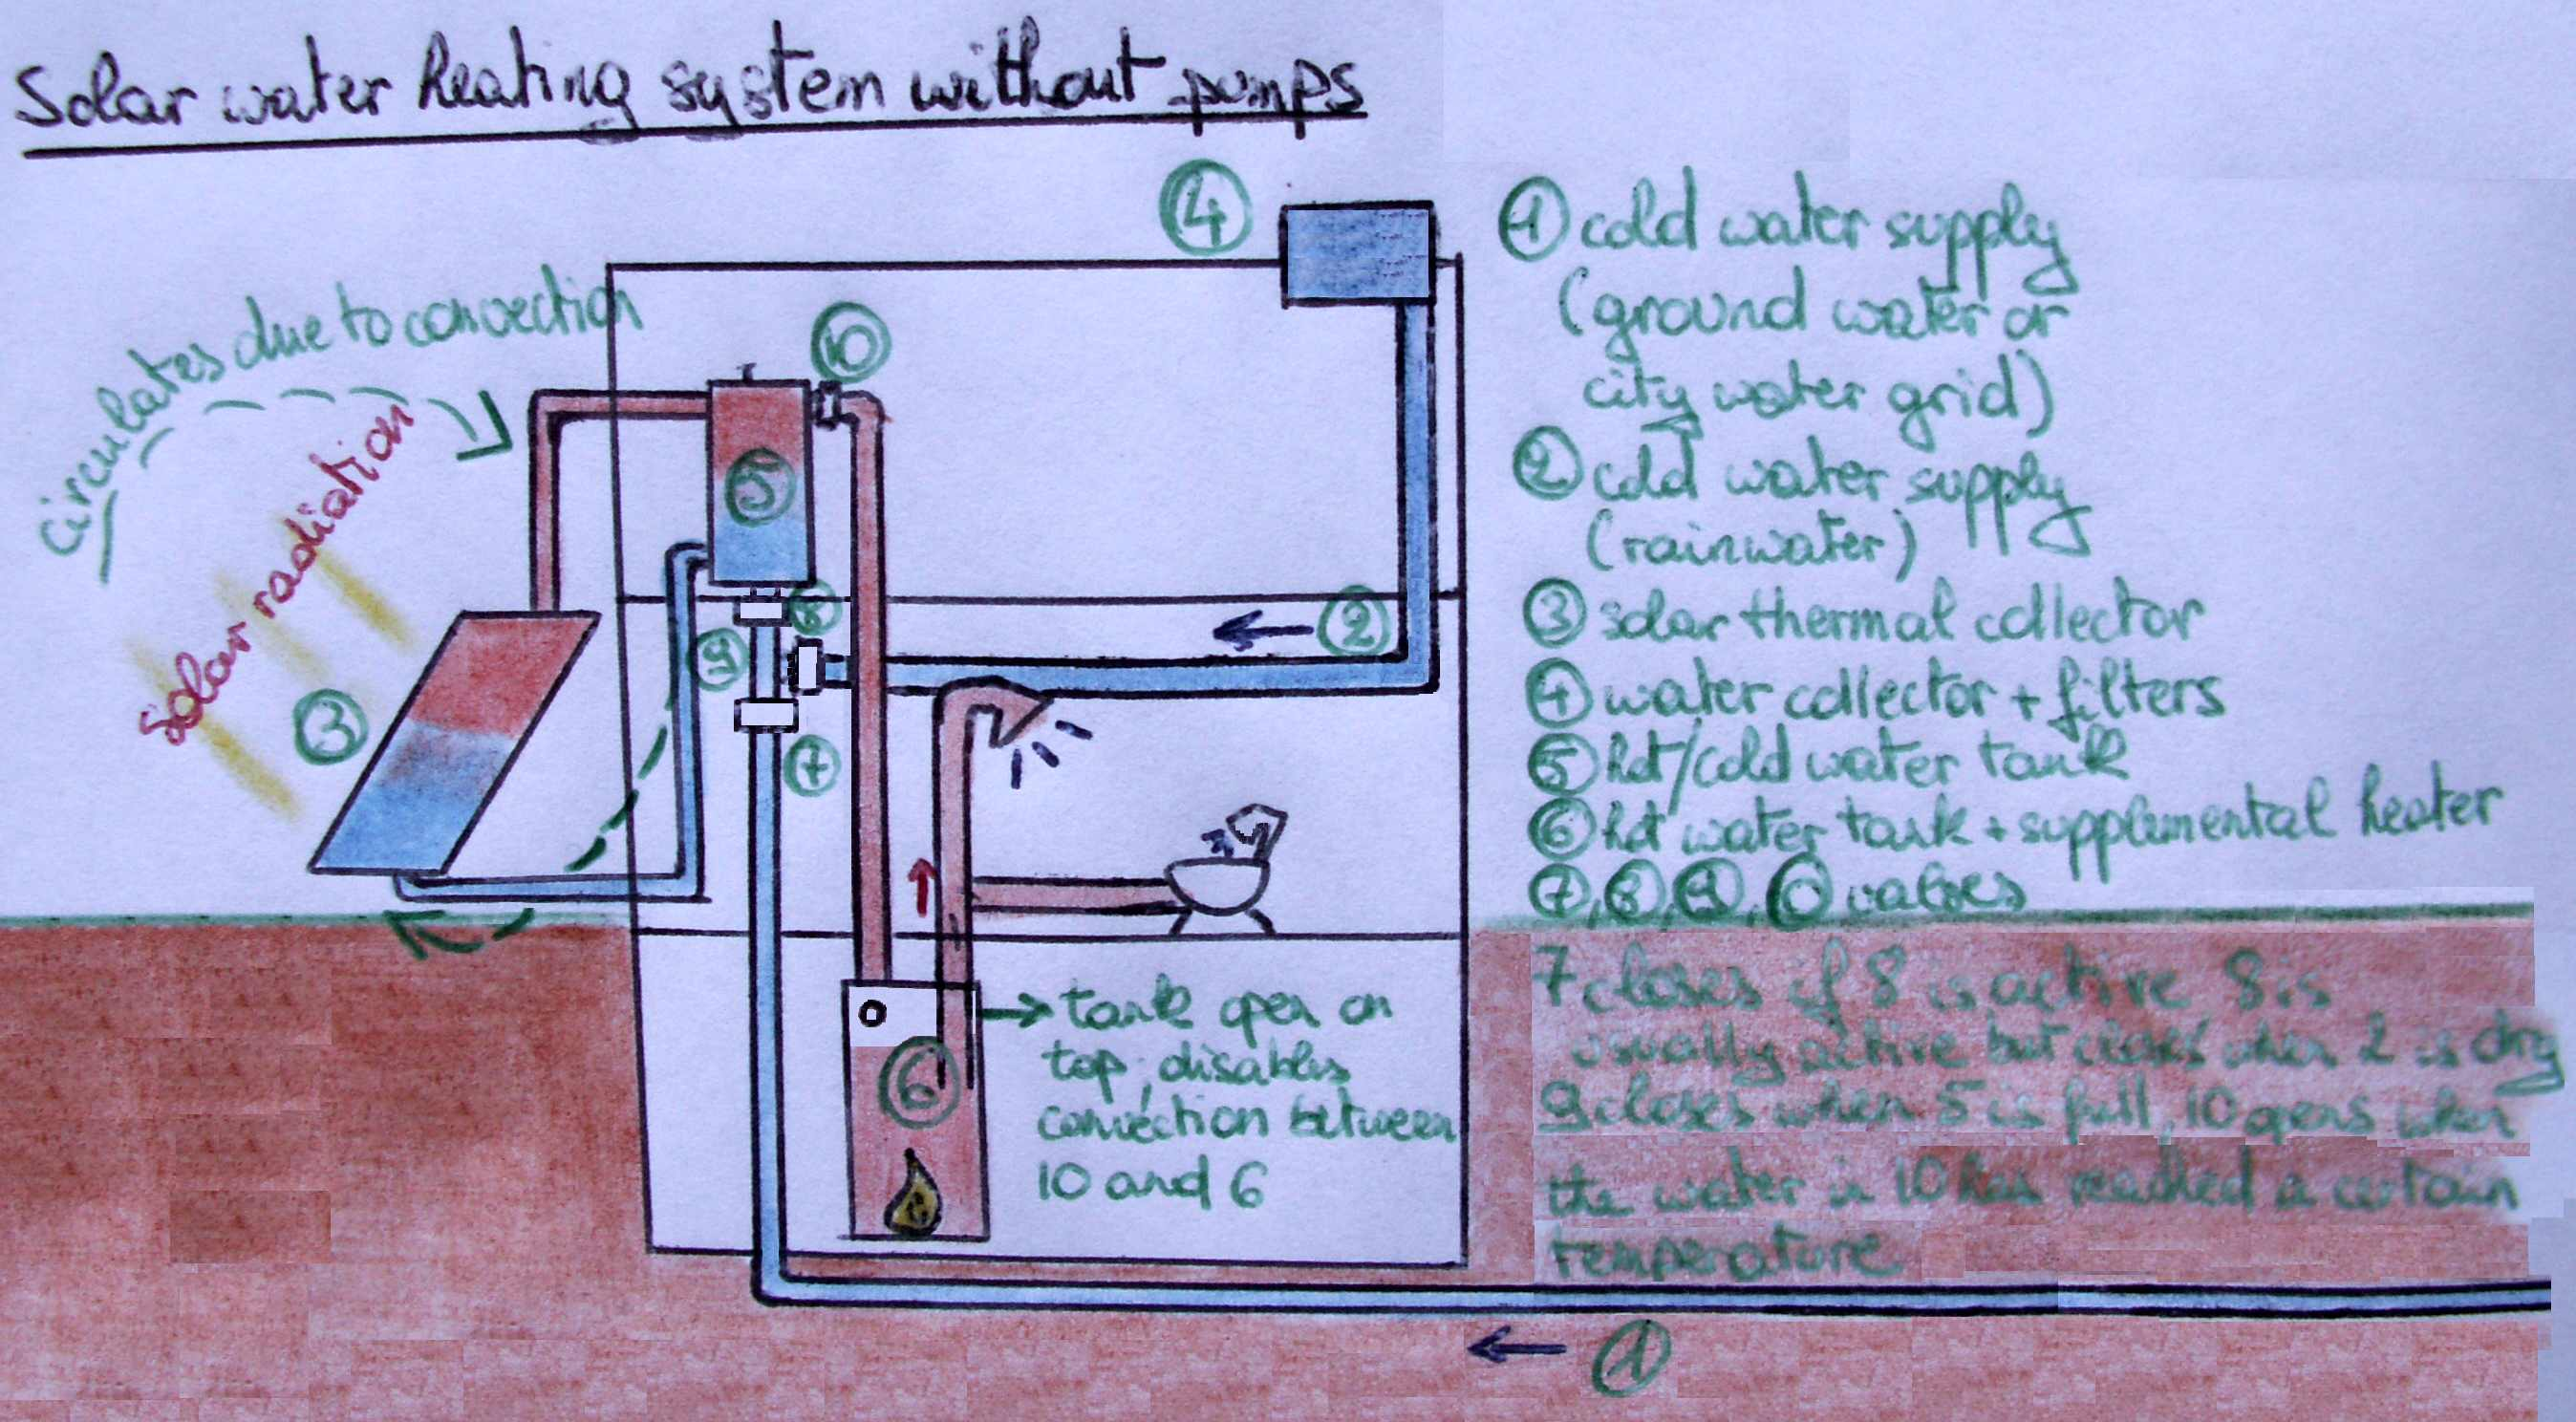 solar water heater schematic diagram 2010 pontiac g6 wiring pipe get free image about